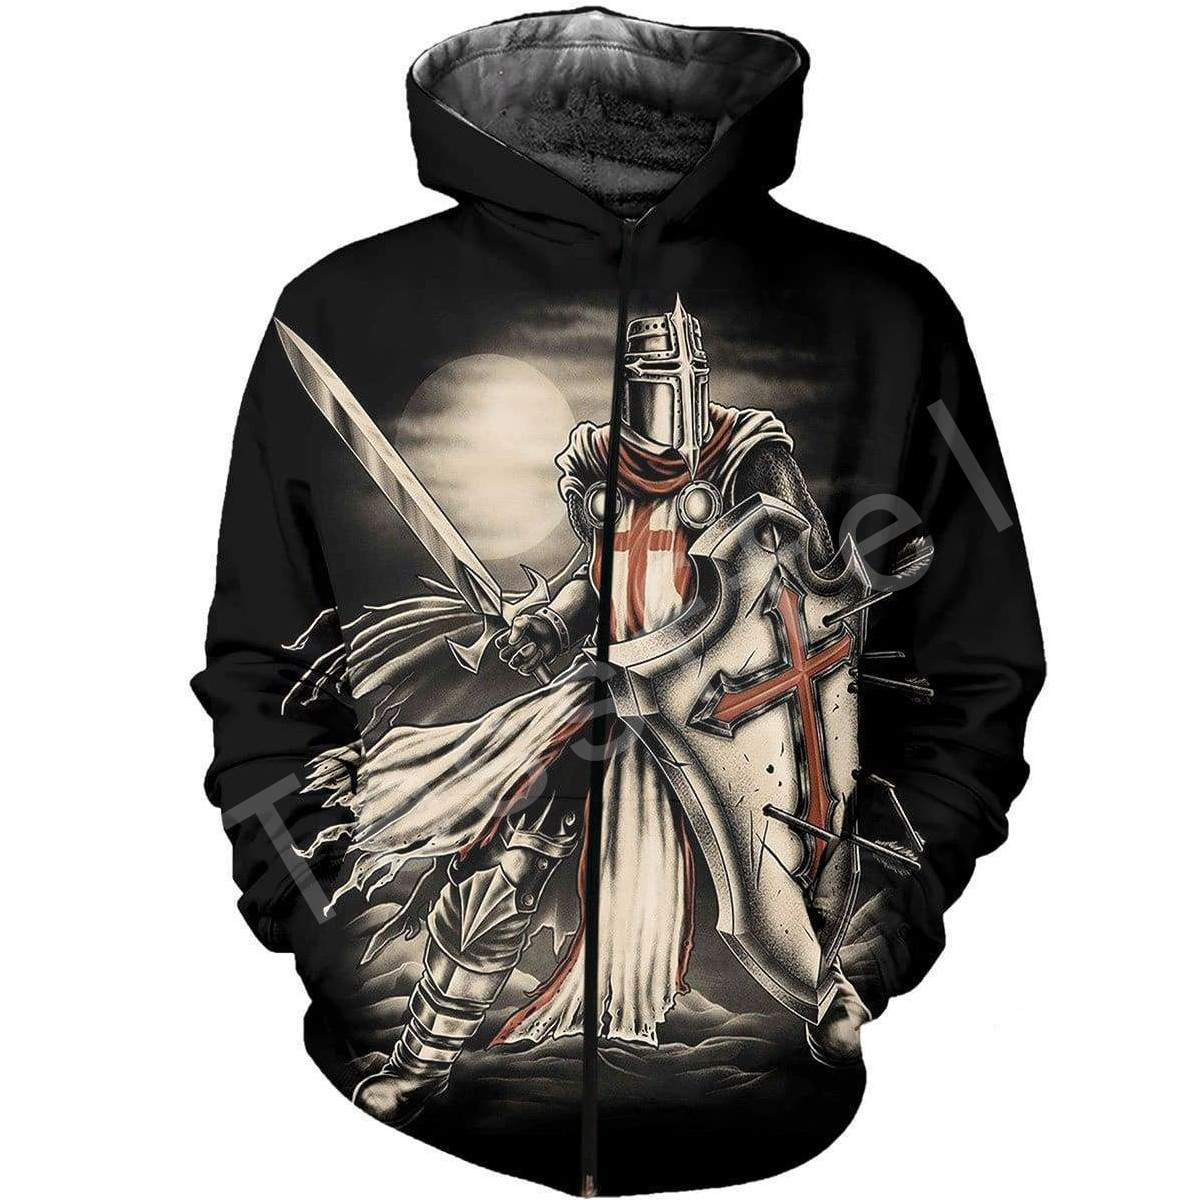 Tessffel Knight Templar cavalie 3D full Printed Hoodie Sweatshirt Jacket shirts Men Women HIP HOP fit colorful Harajuku style 4 in Hoodies amp Sweatshirts from Men 39 s Clothing